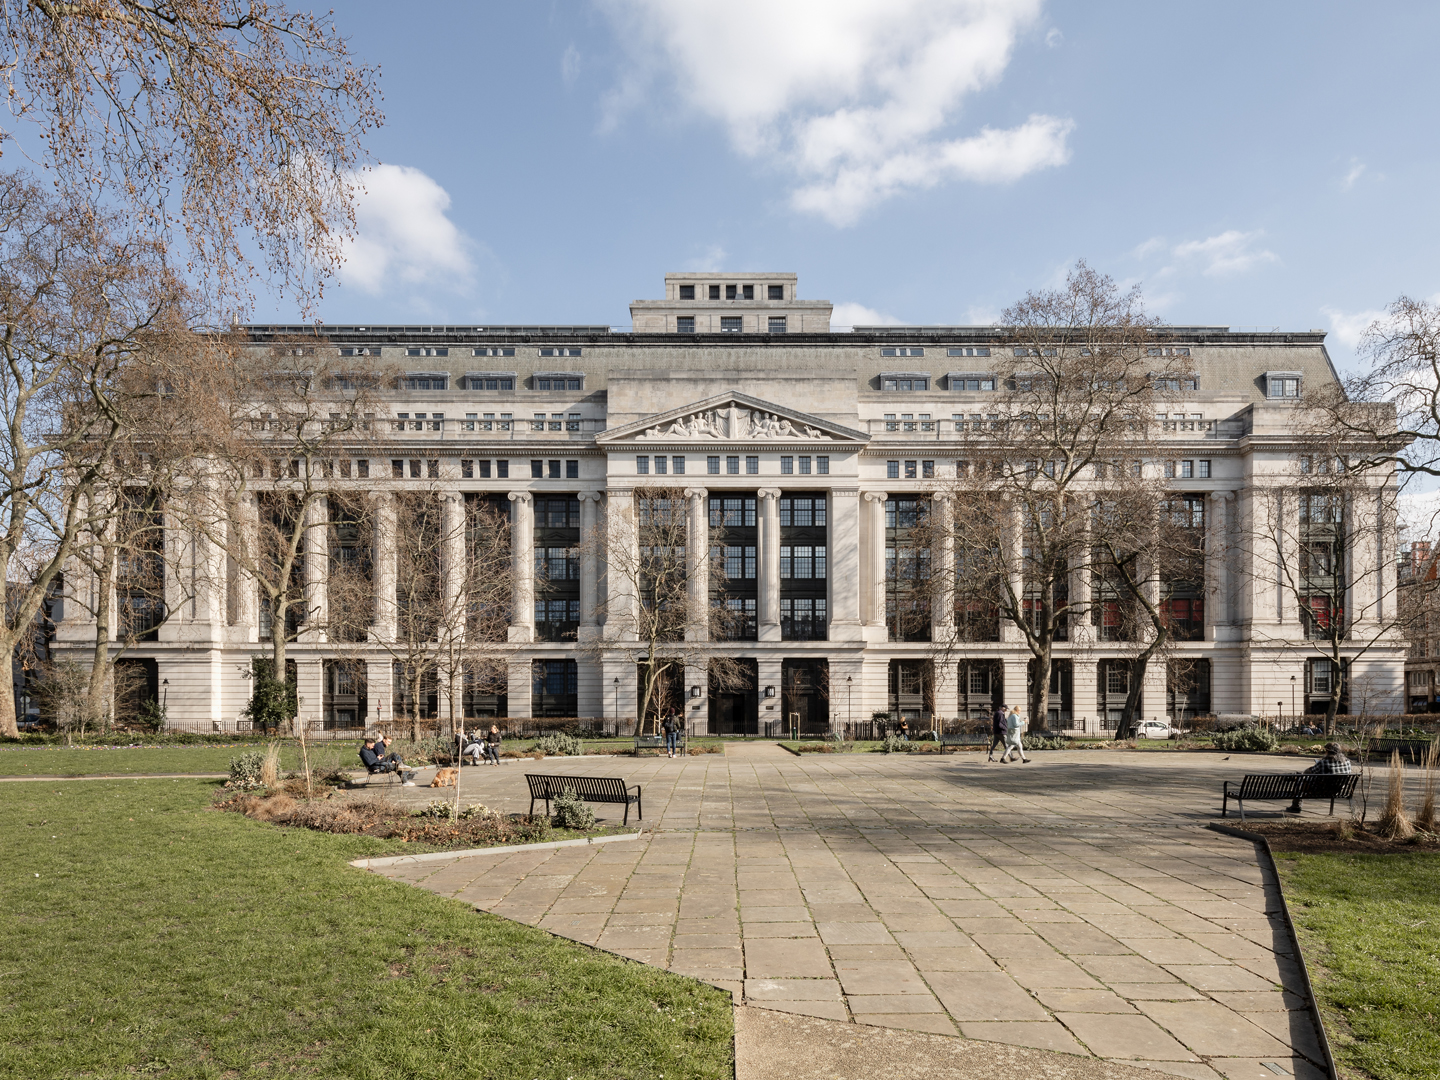 LABS at Victoria House, Bloomsbury